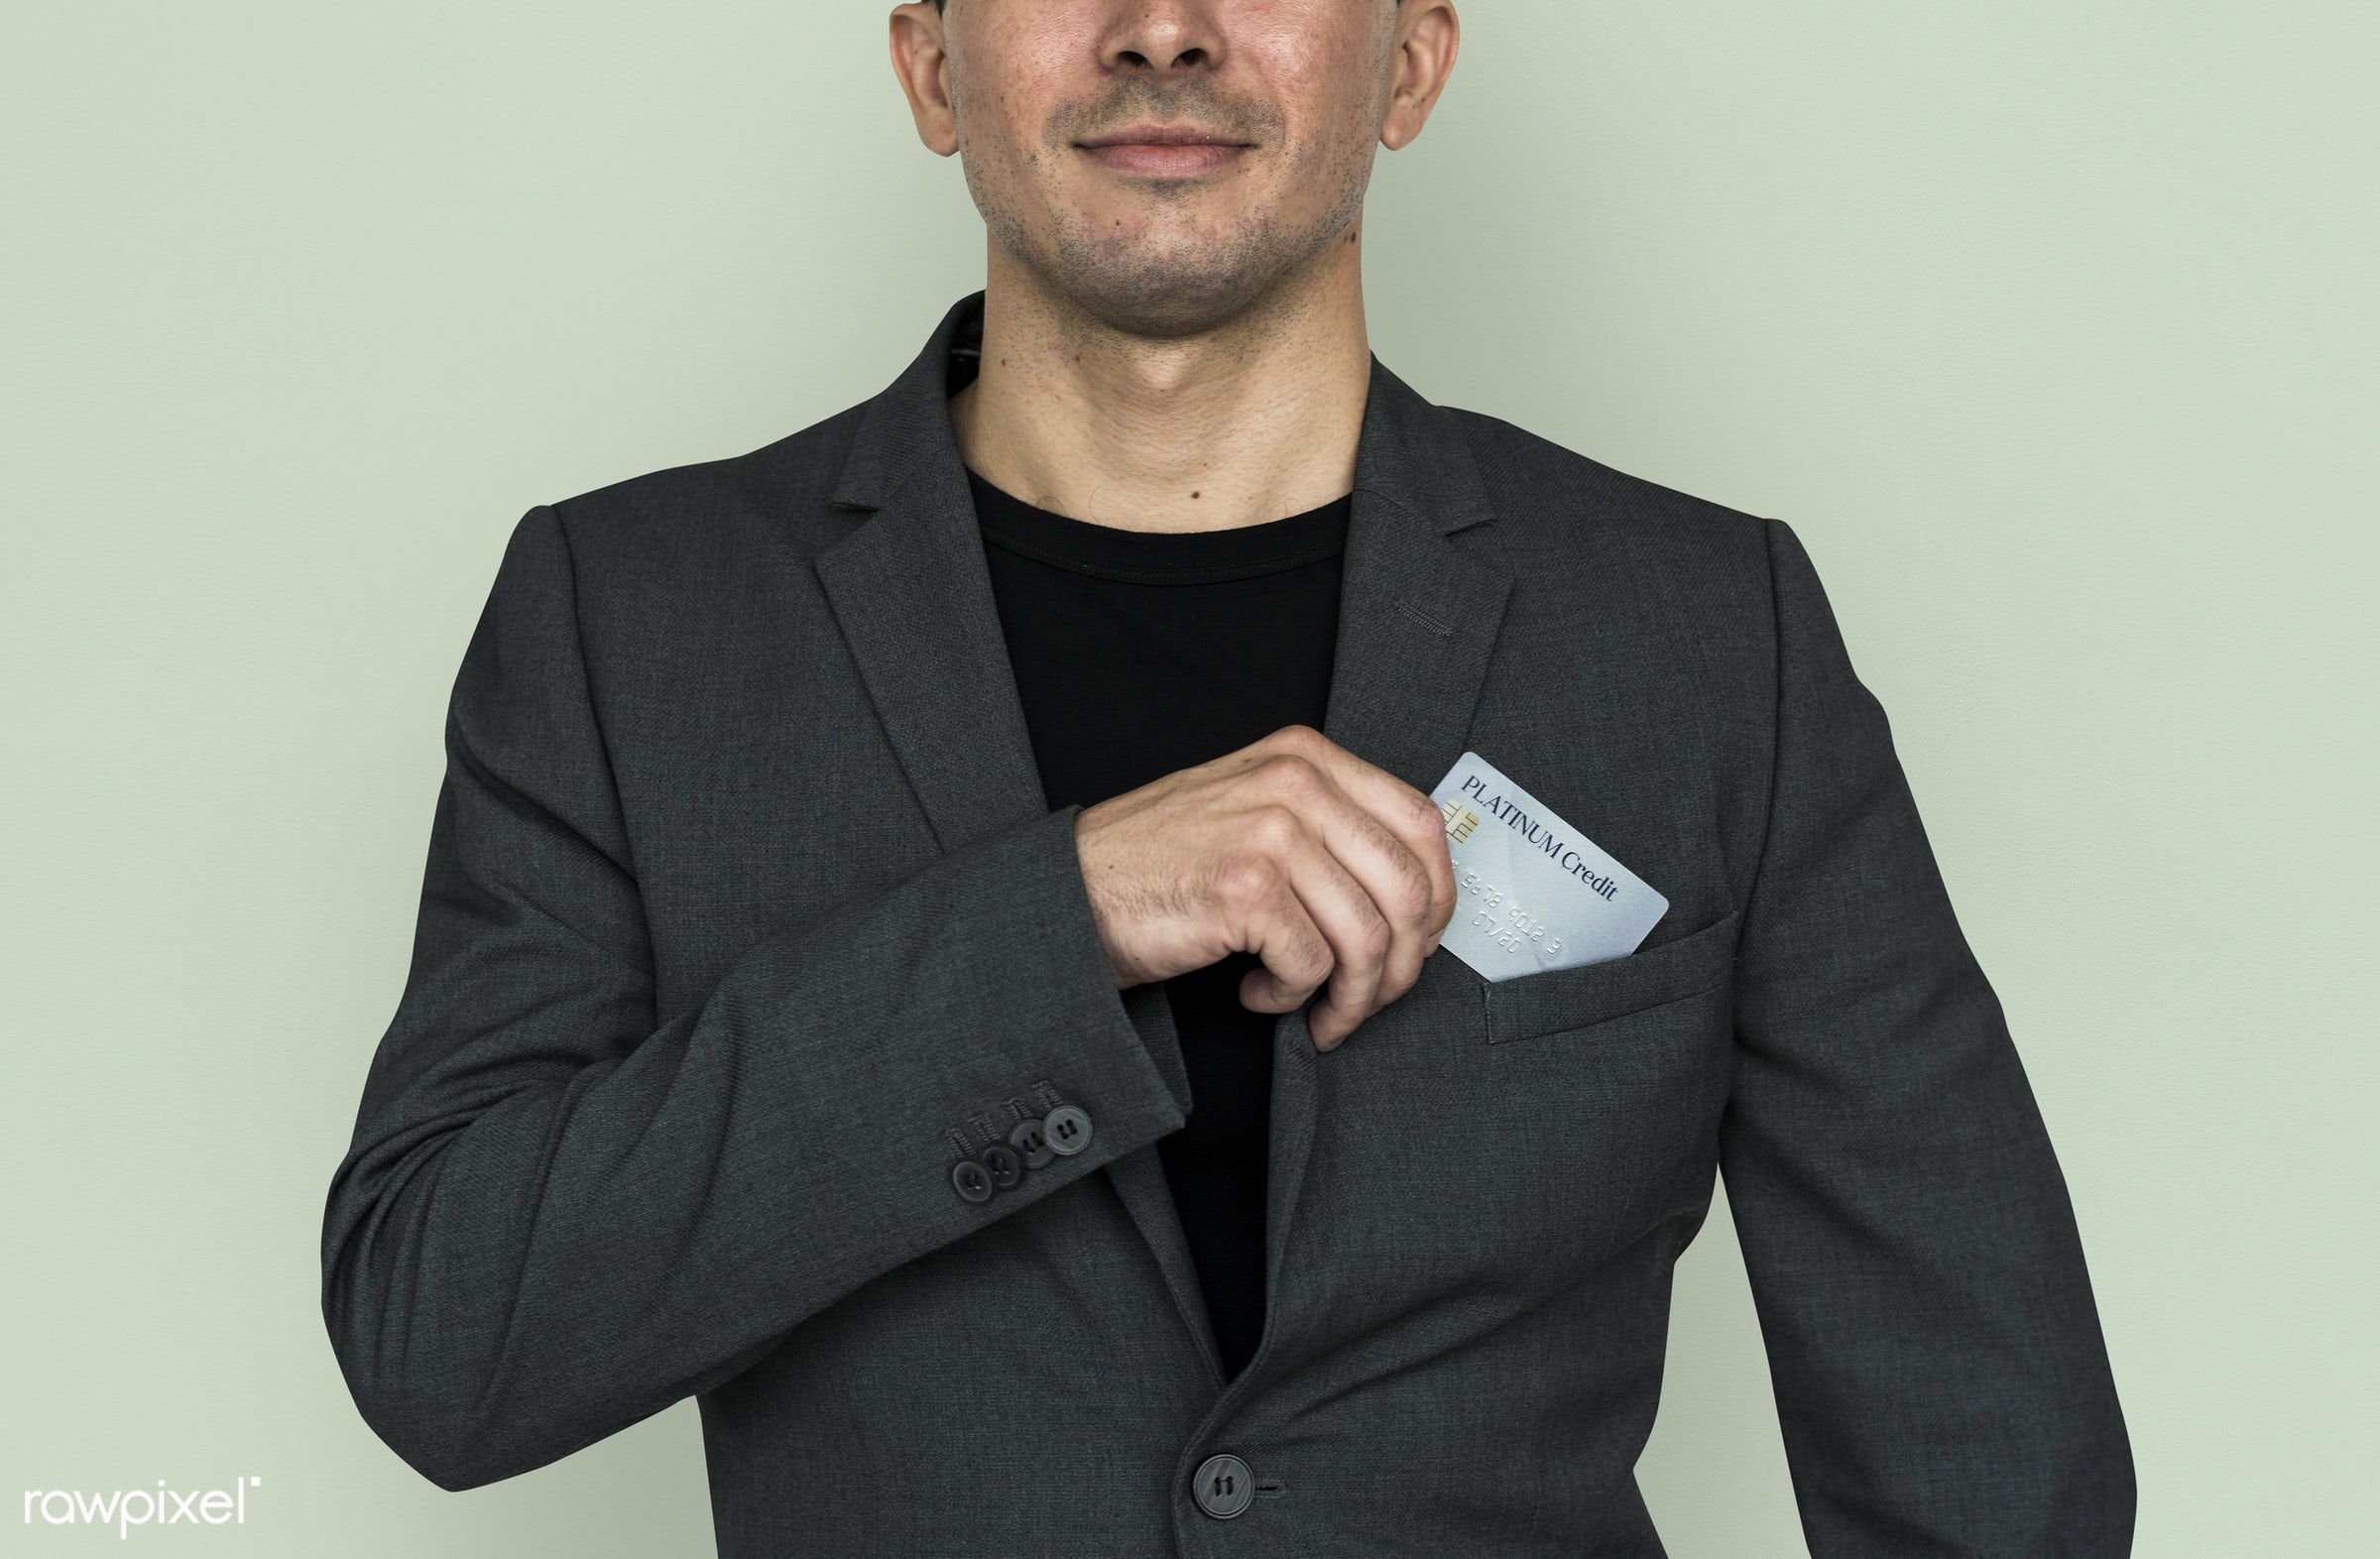 studio, expression, person, business wear, formal dressing, people, business, caucasian, card, smile, credit, smiling, man,...